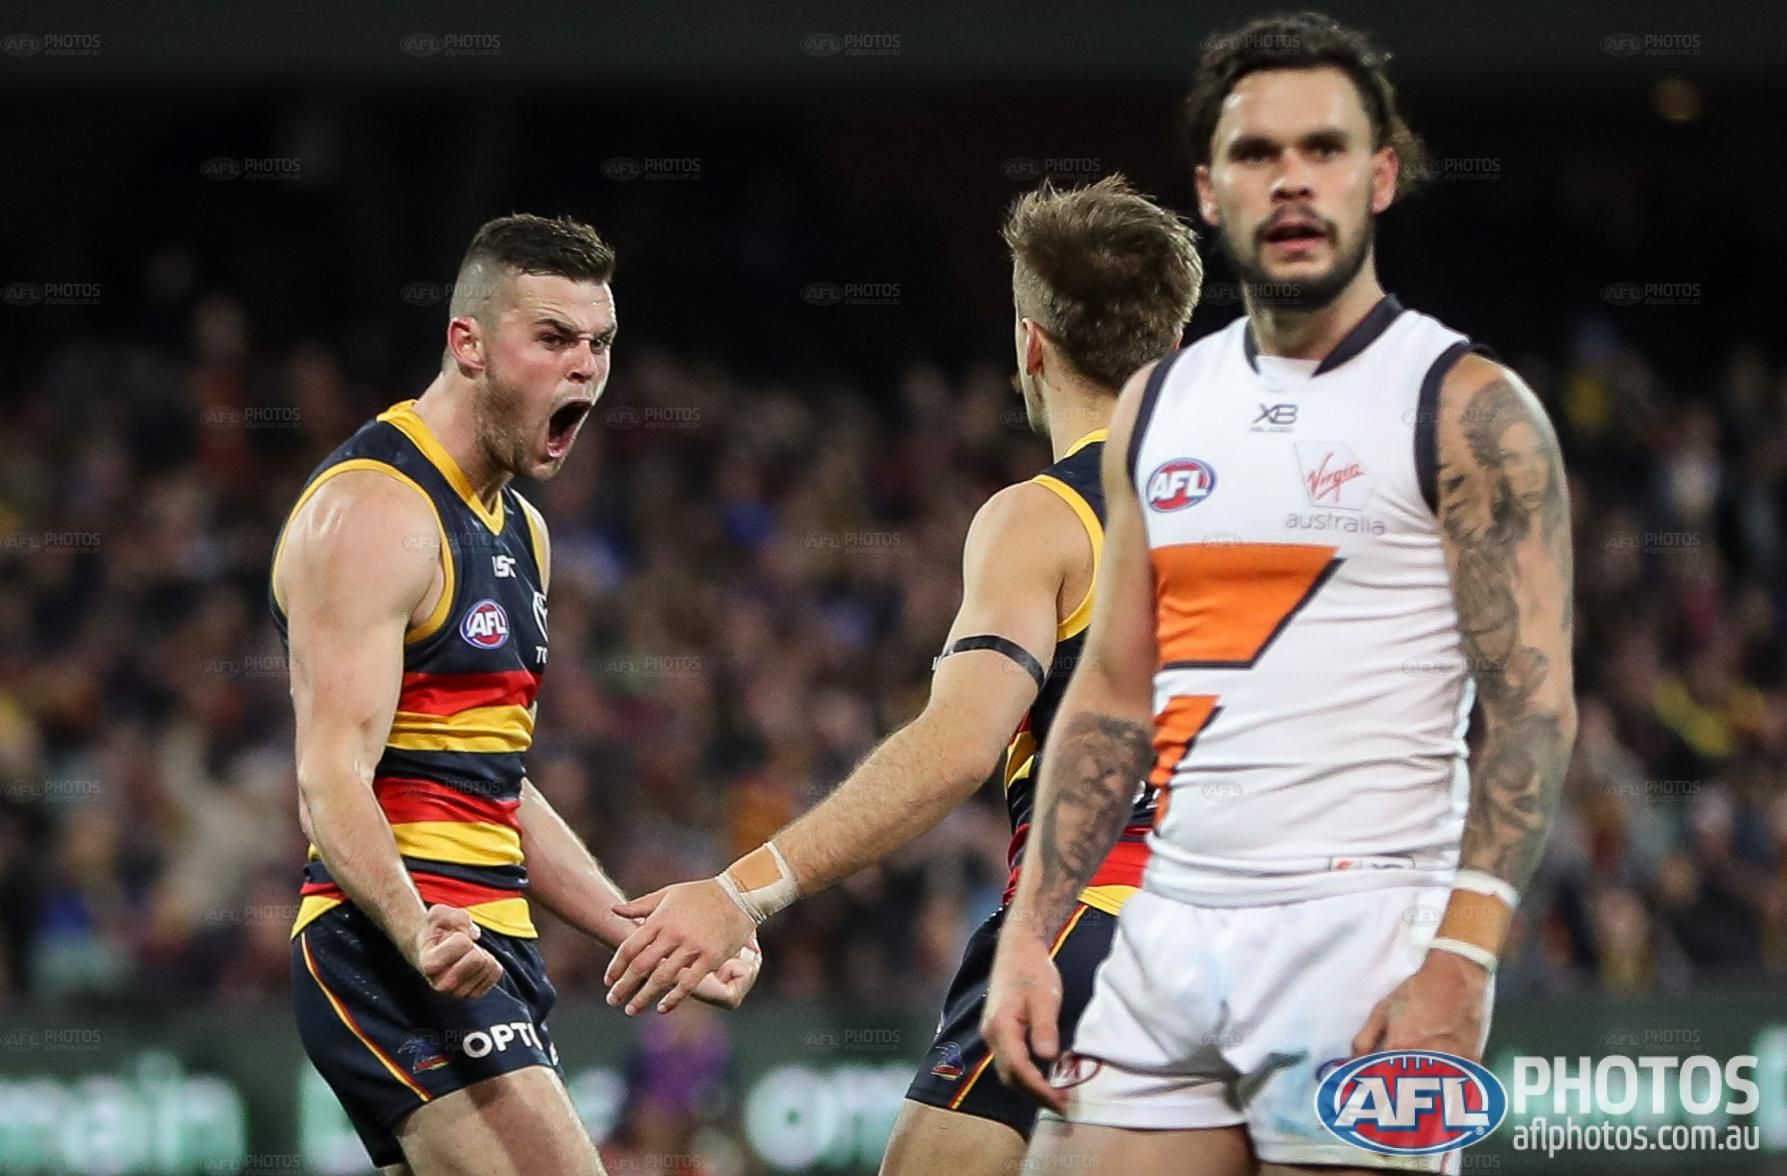 Aussie Rules suspends season for at least two months over